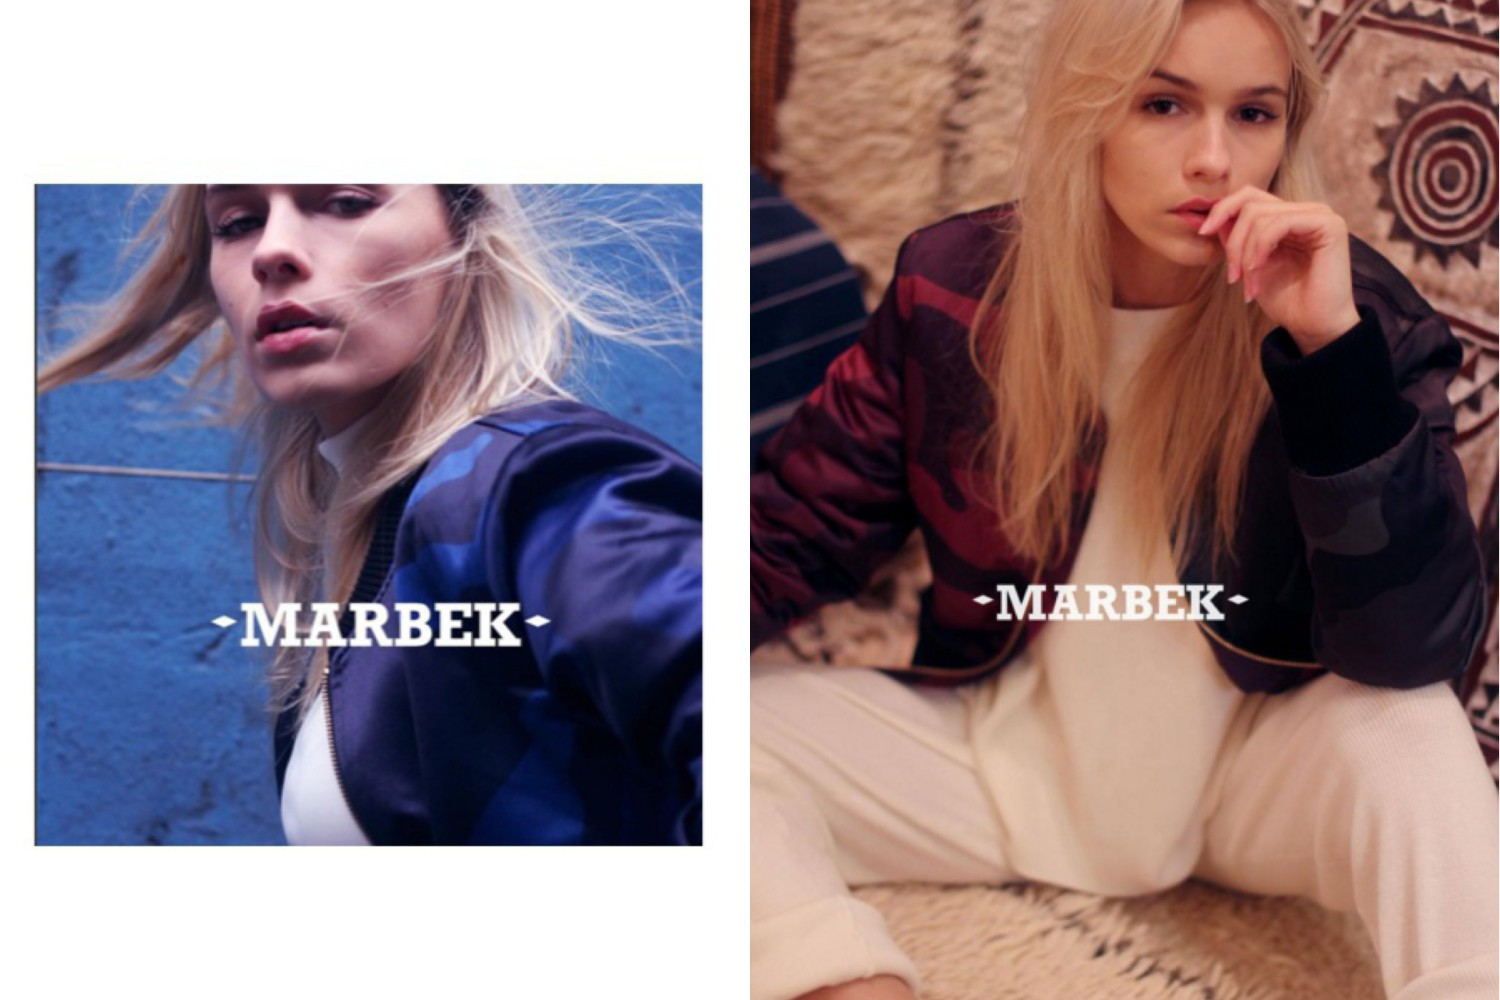 Petite-fashion-model-Anne-Marbek-fashion-campaign-Top-London-modelling-agency-IMM